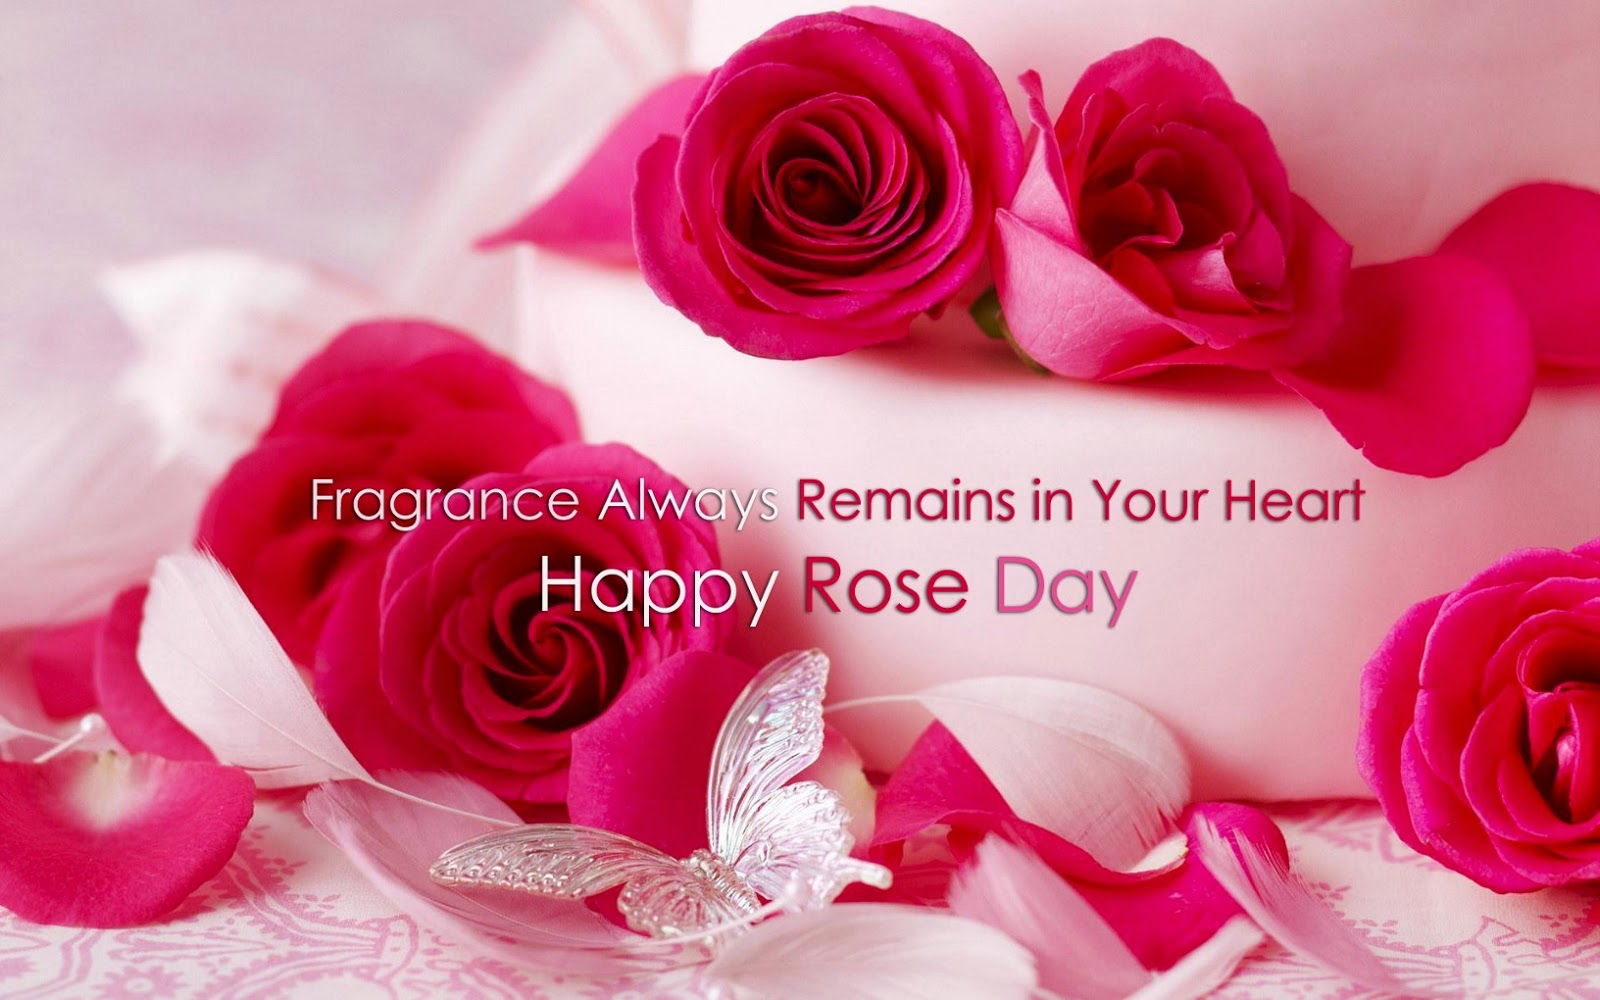 Happy rose day 2015 greetings card for facebooktwitter and google happy rose day 2015 greetings card for facebooktwitter and google plus kristyandbryce Images